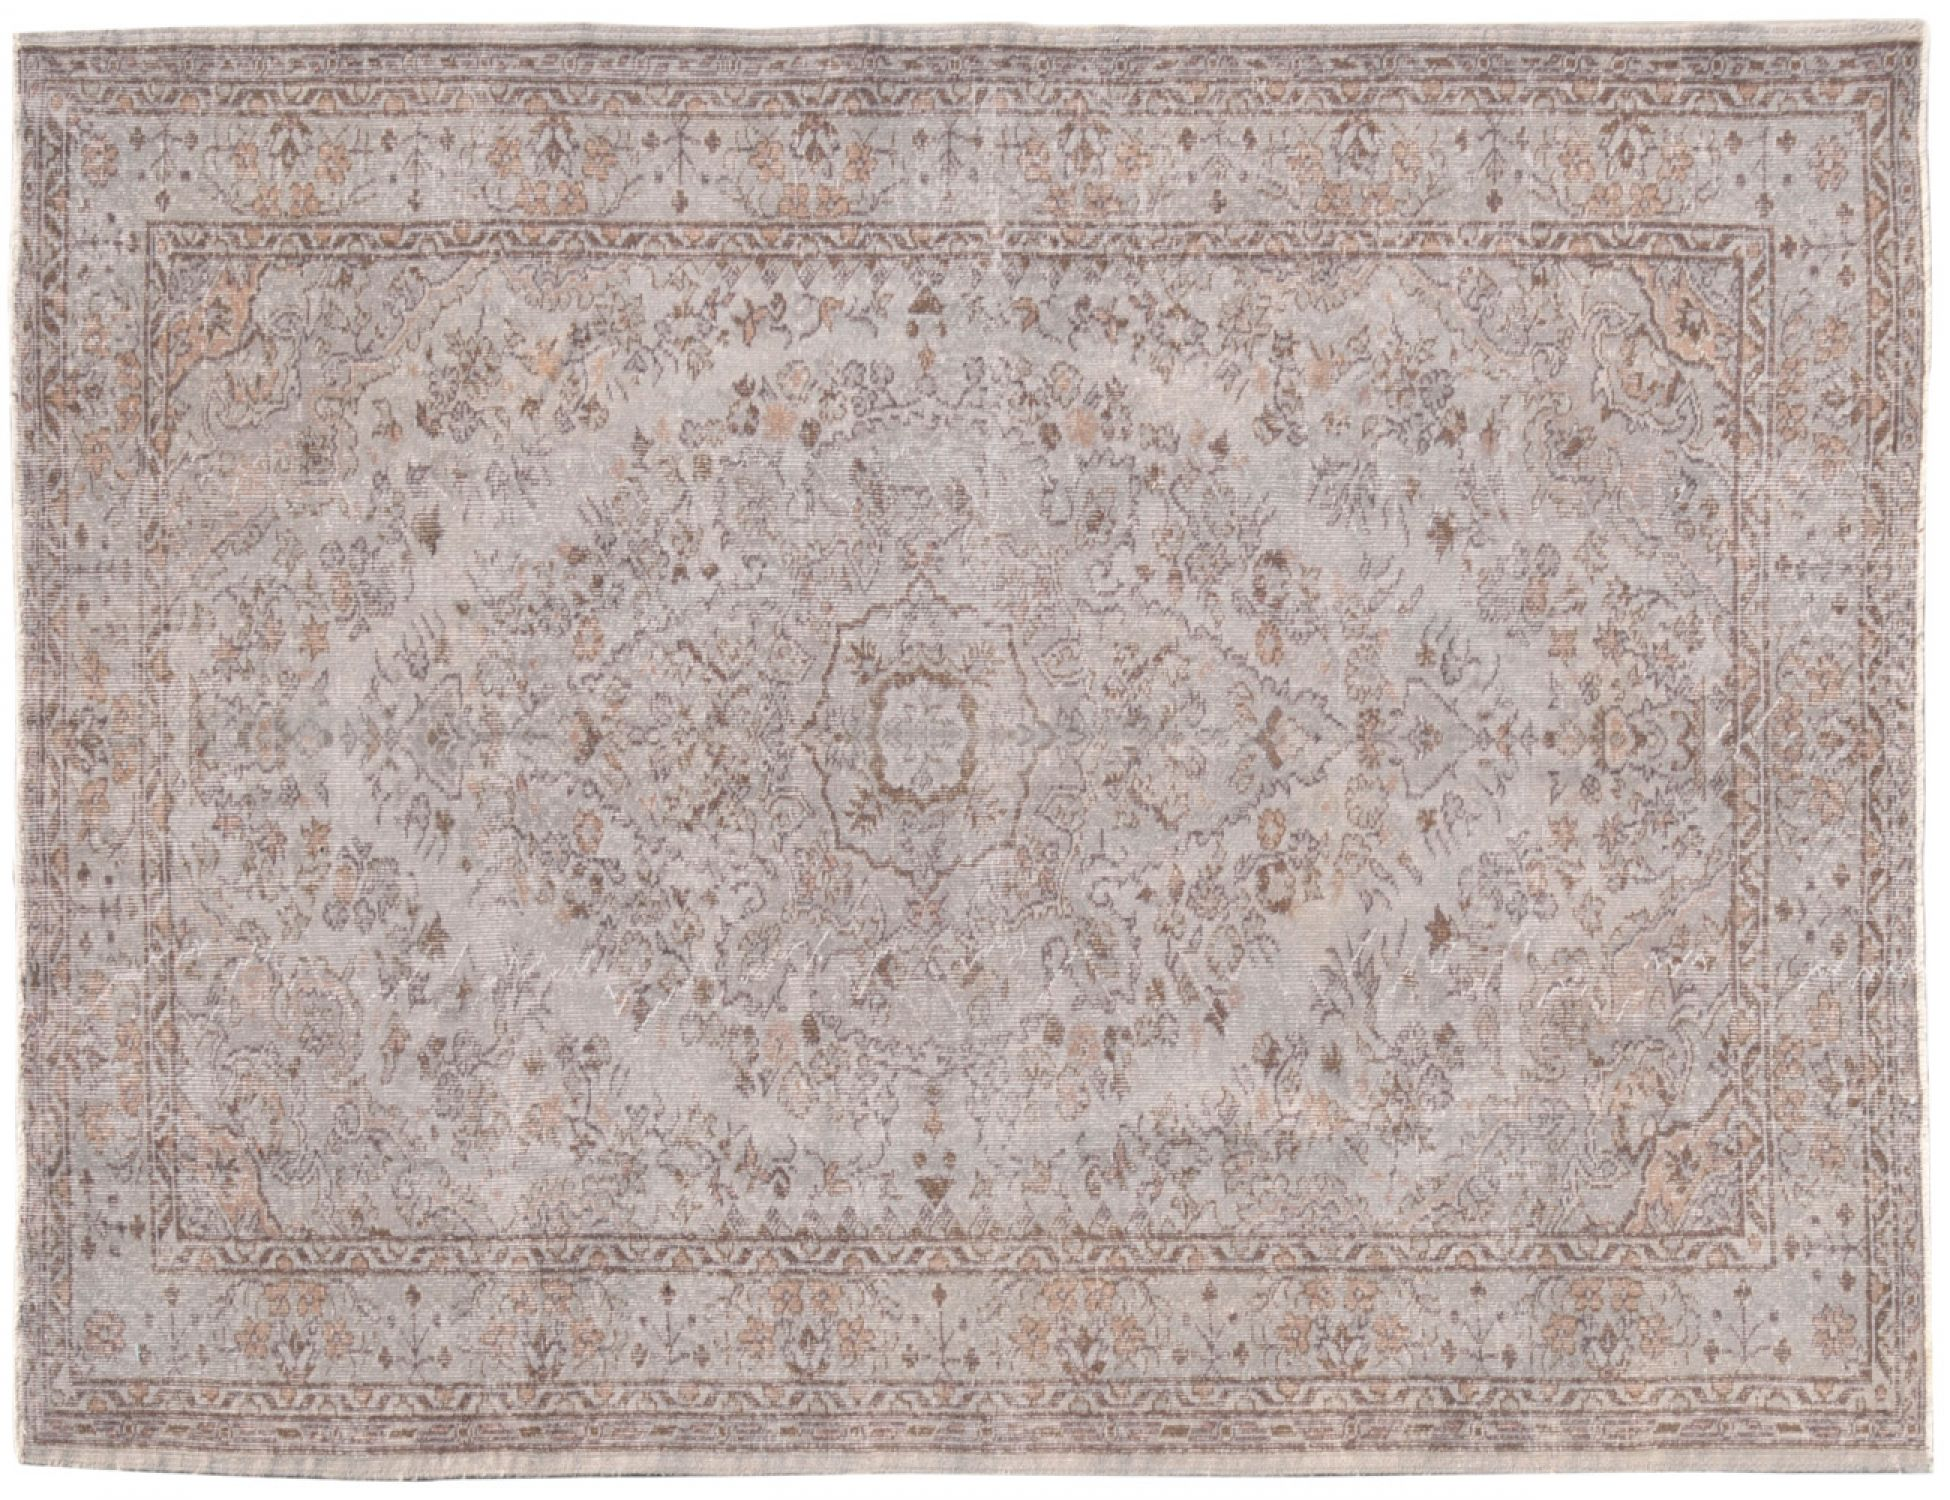 Vintage Carpet  grey <br/>277 x 170 cm